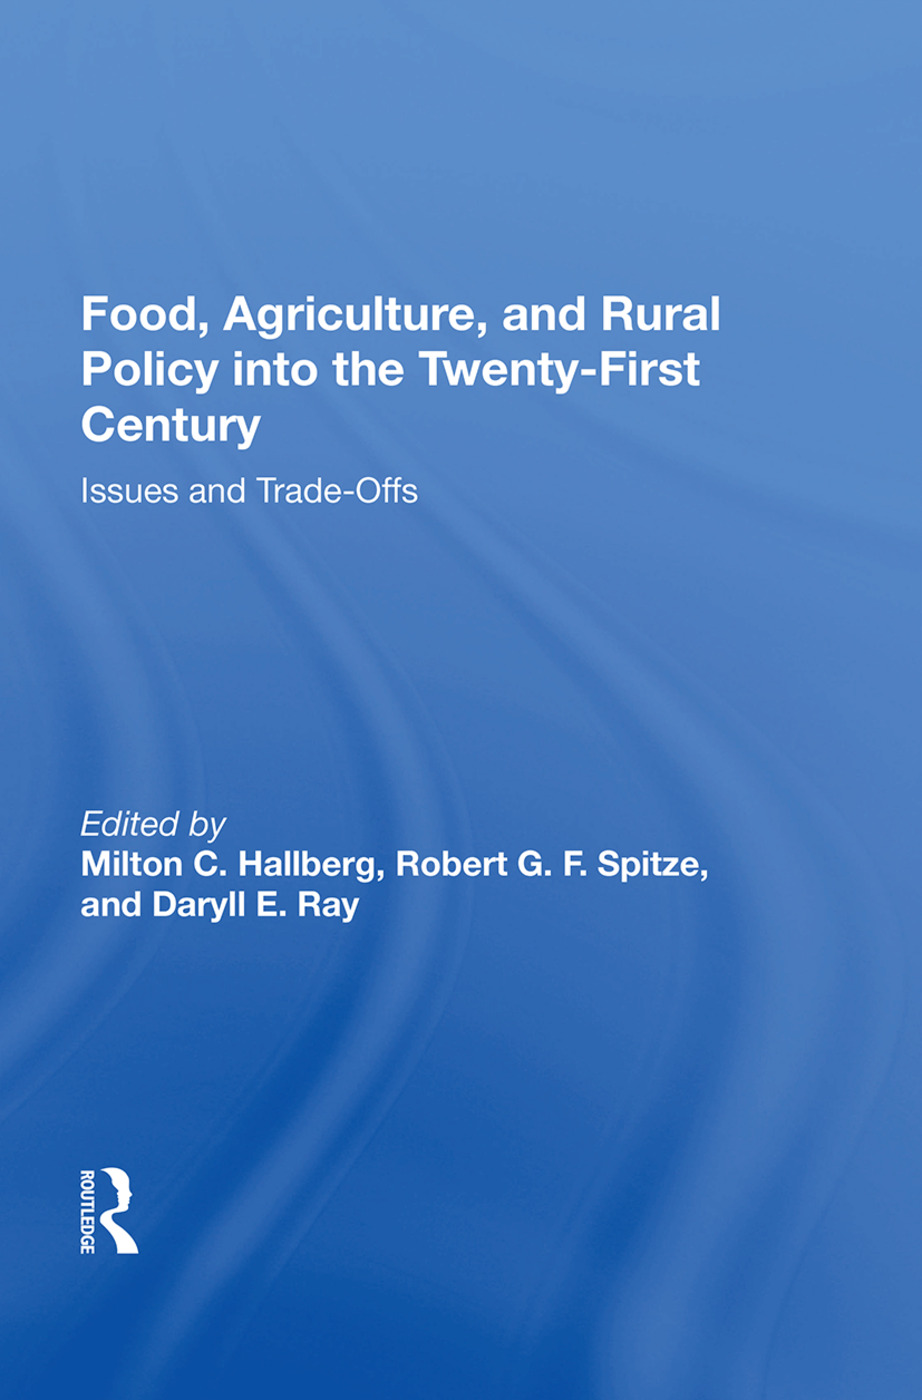 Food, Agriculture, and Rural Policy into the Twenty-First Century: Issues and Trade-Offs book cover